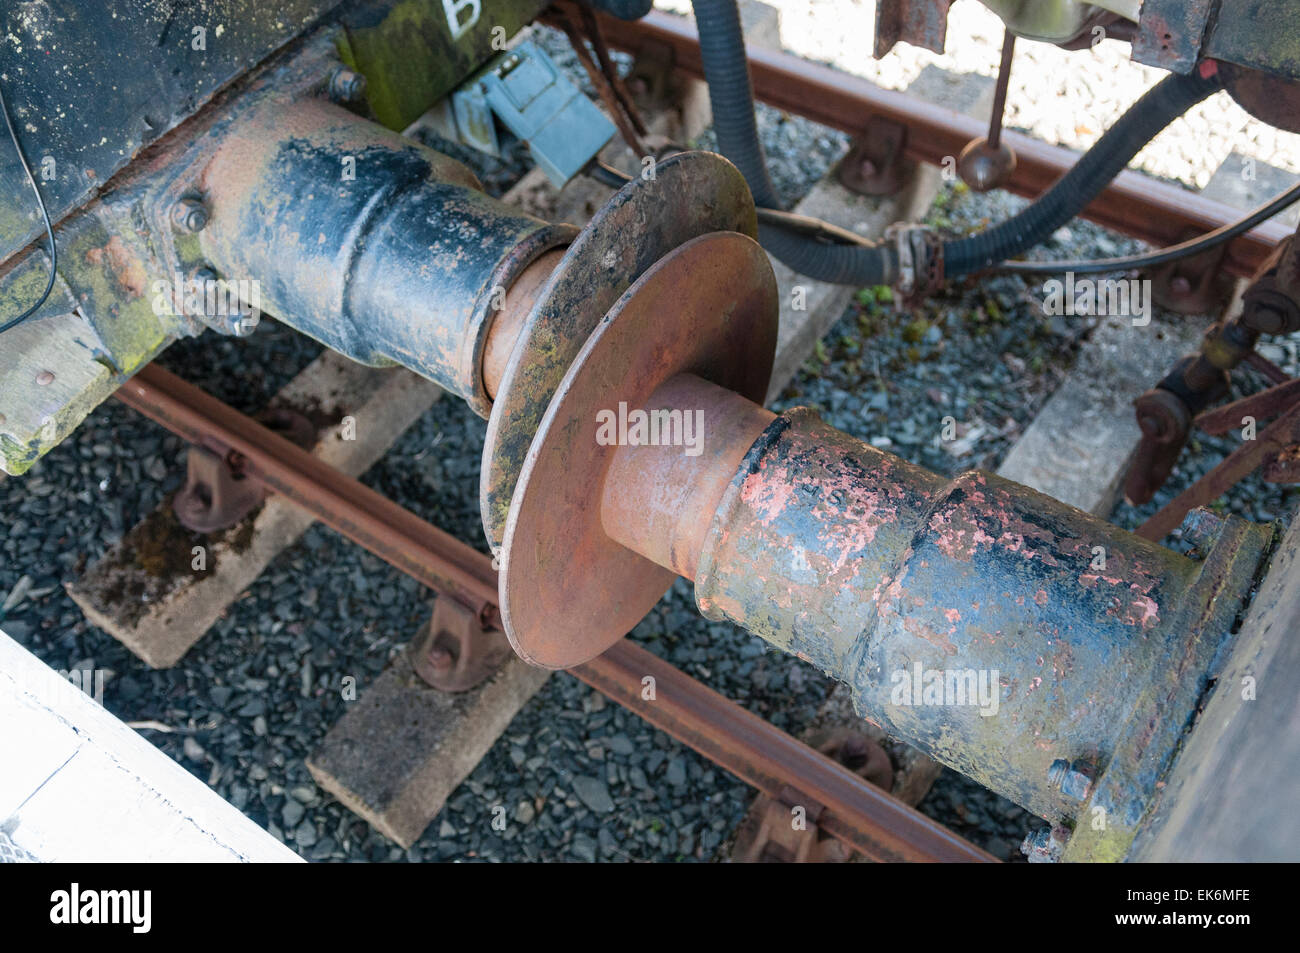 Buffers between two railway carriages - Stock Image